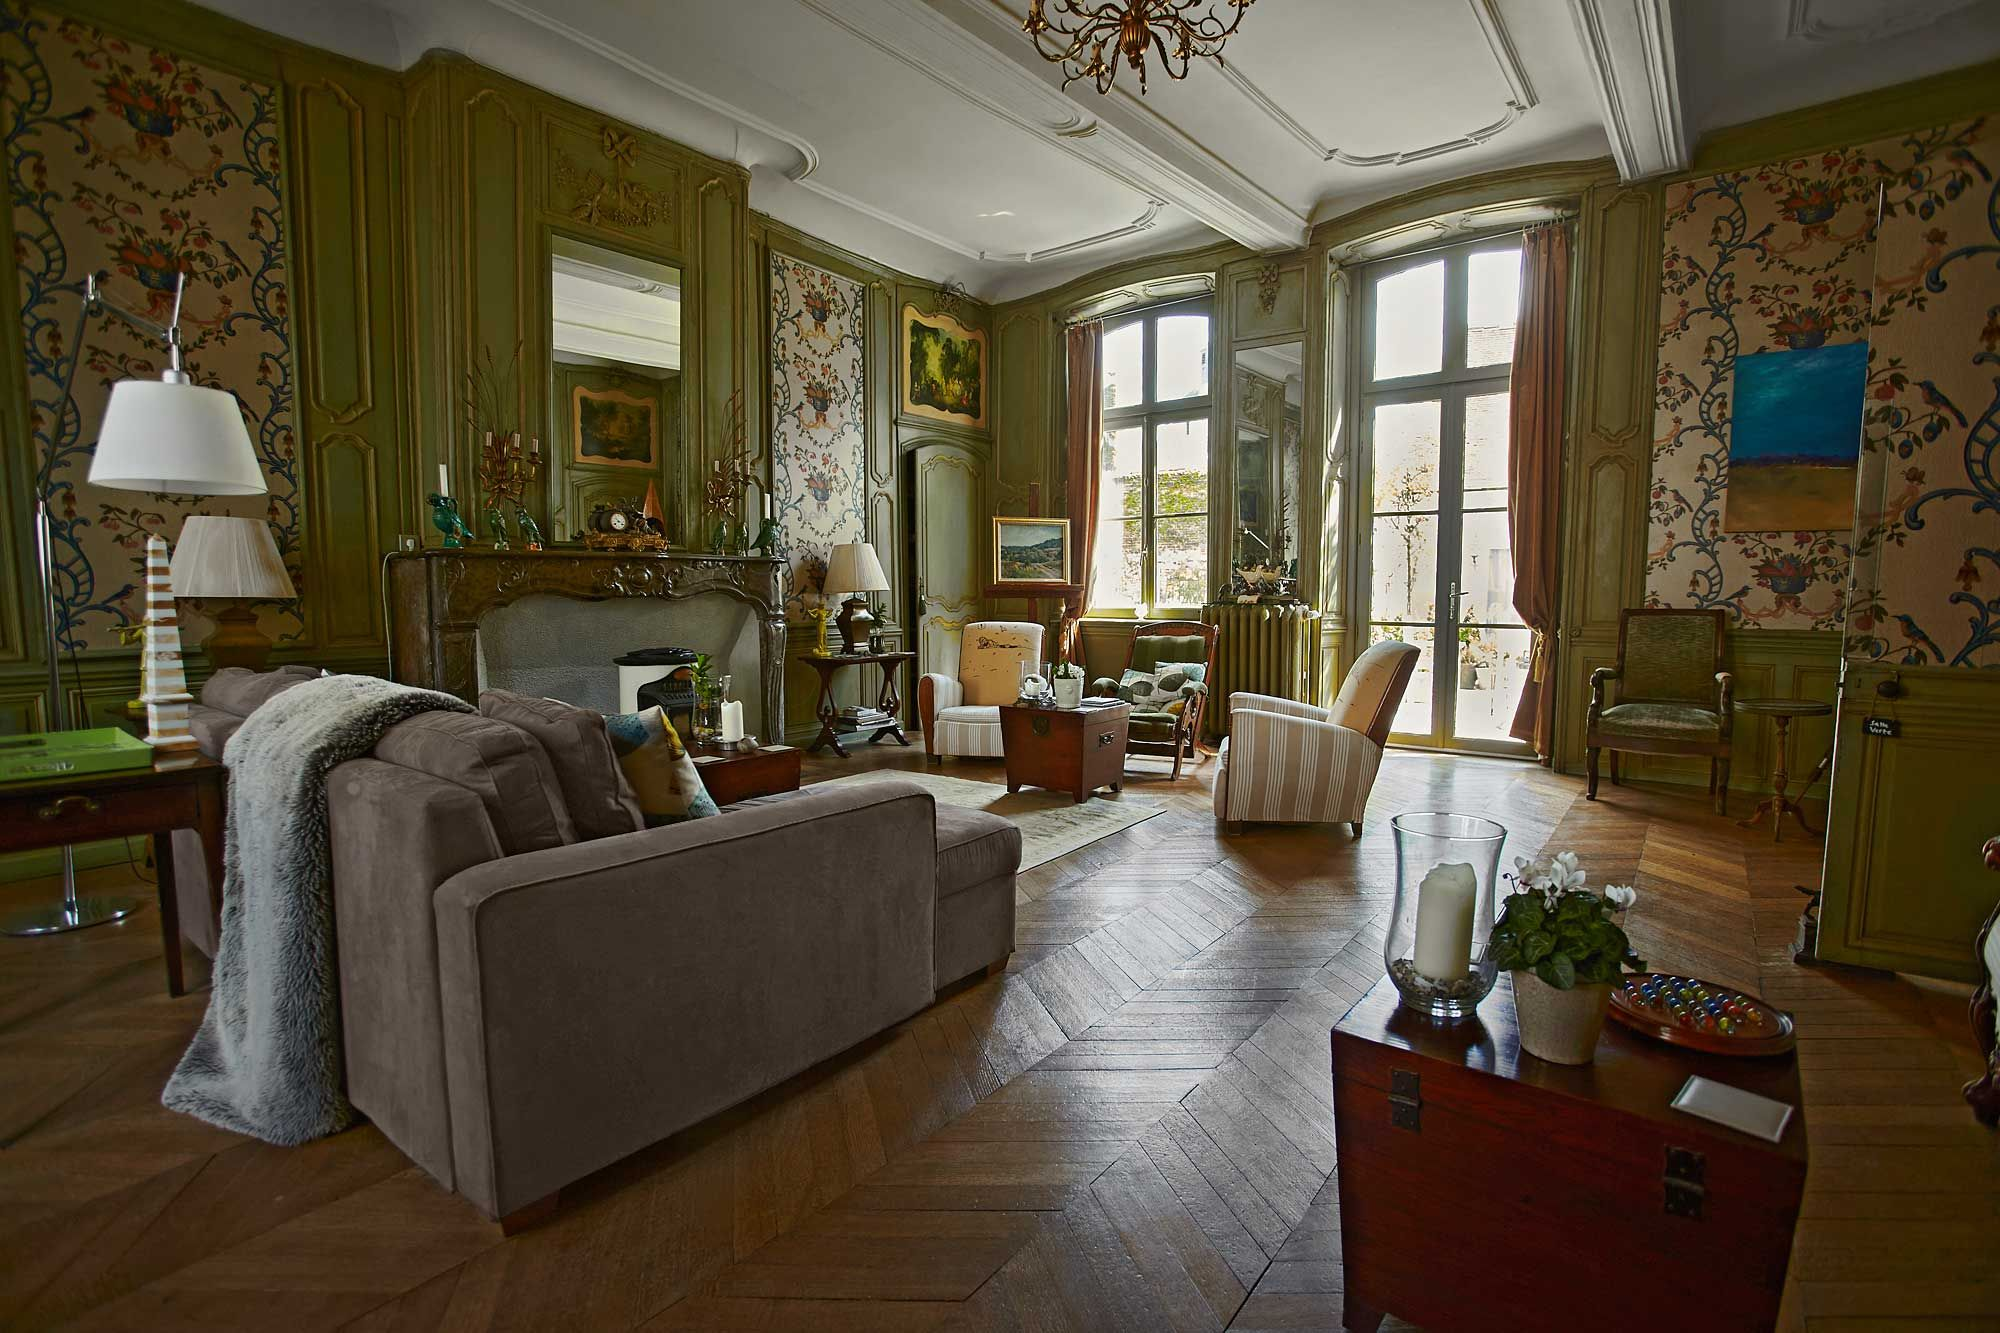 Maison 76 Bed And Breakfast Montreuil A Stylish Welcoming B B Chambres D Hotes Home Century Hotel Decor